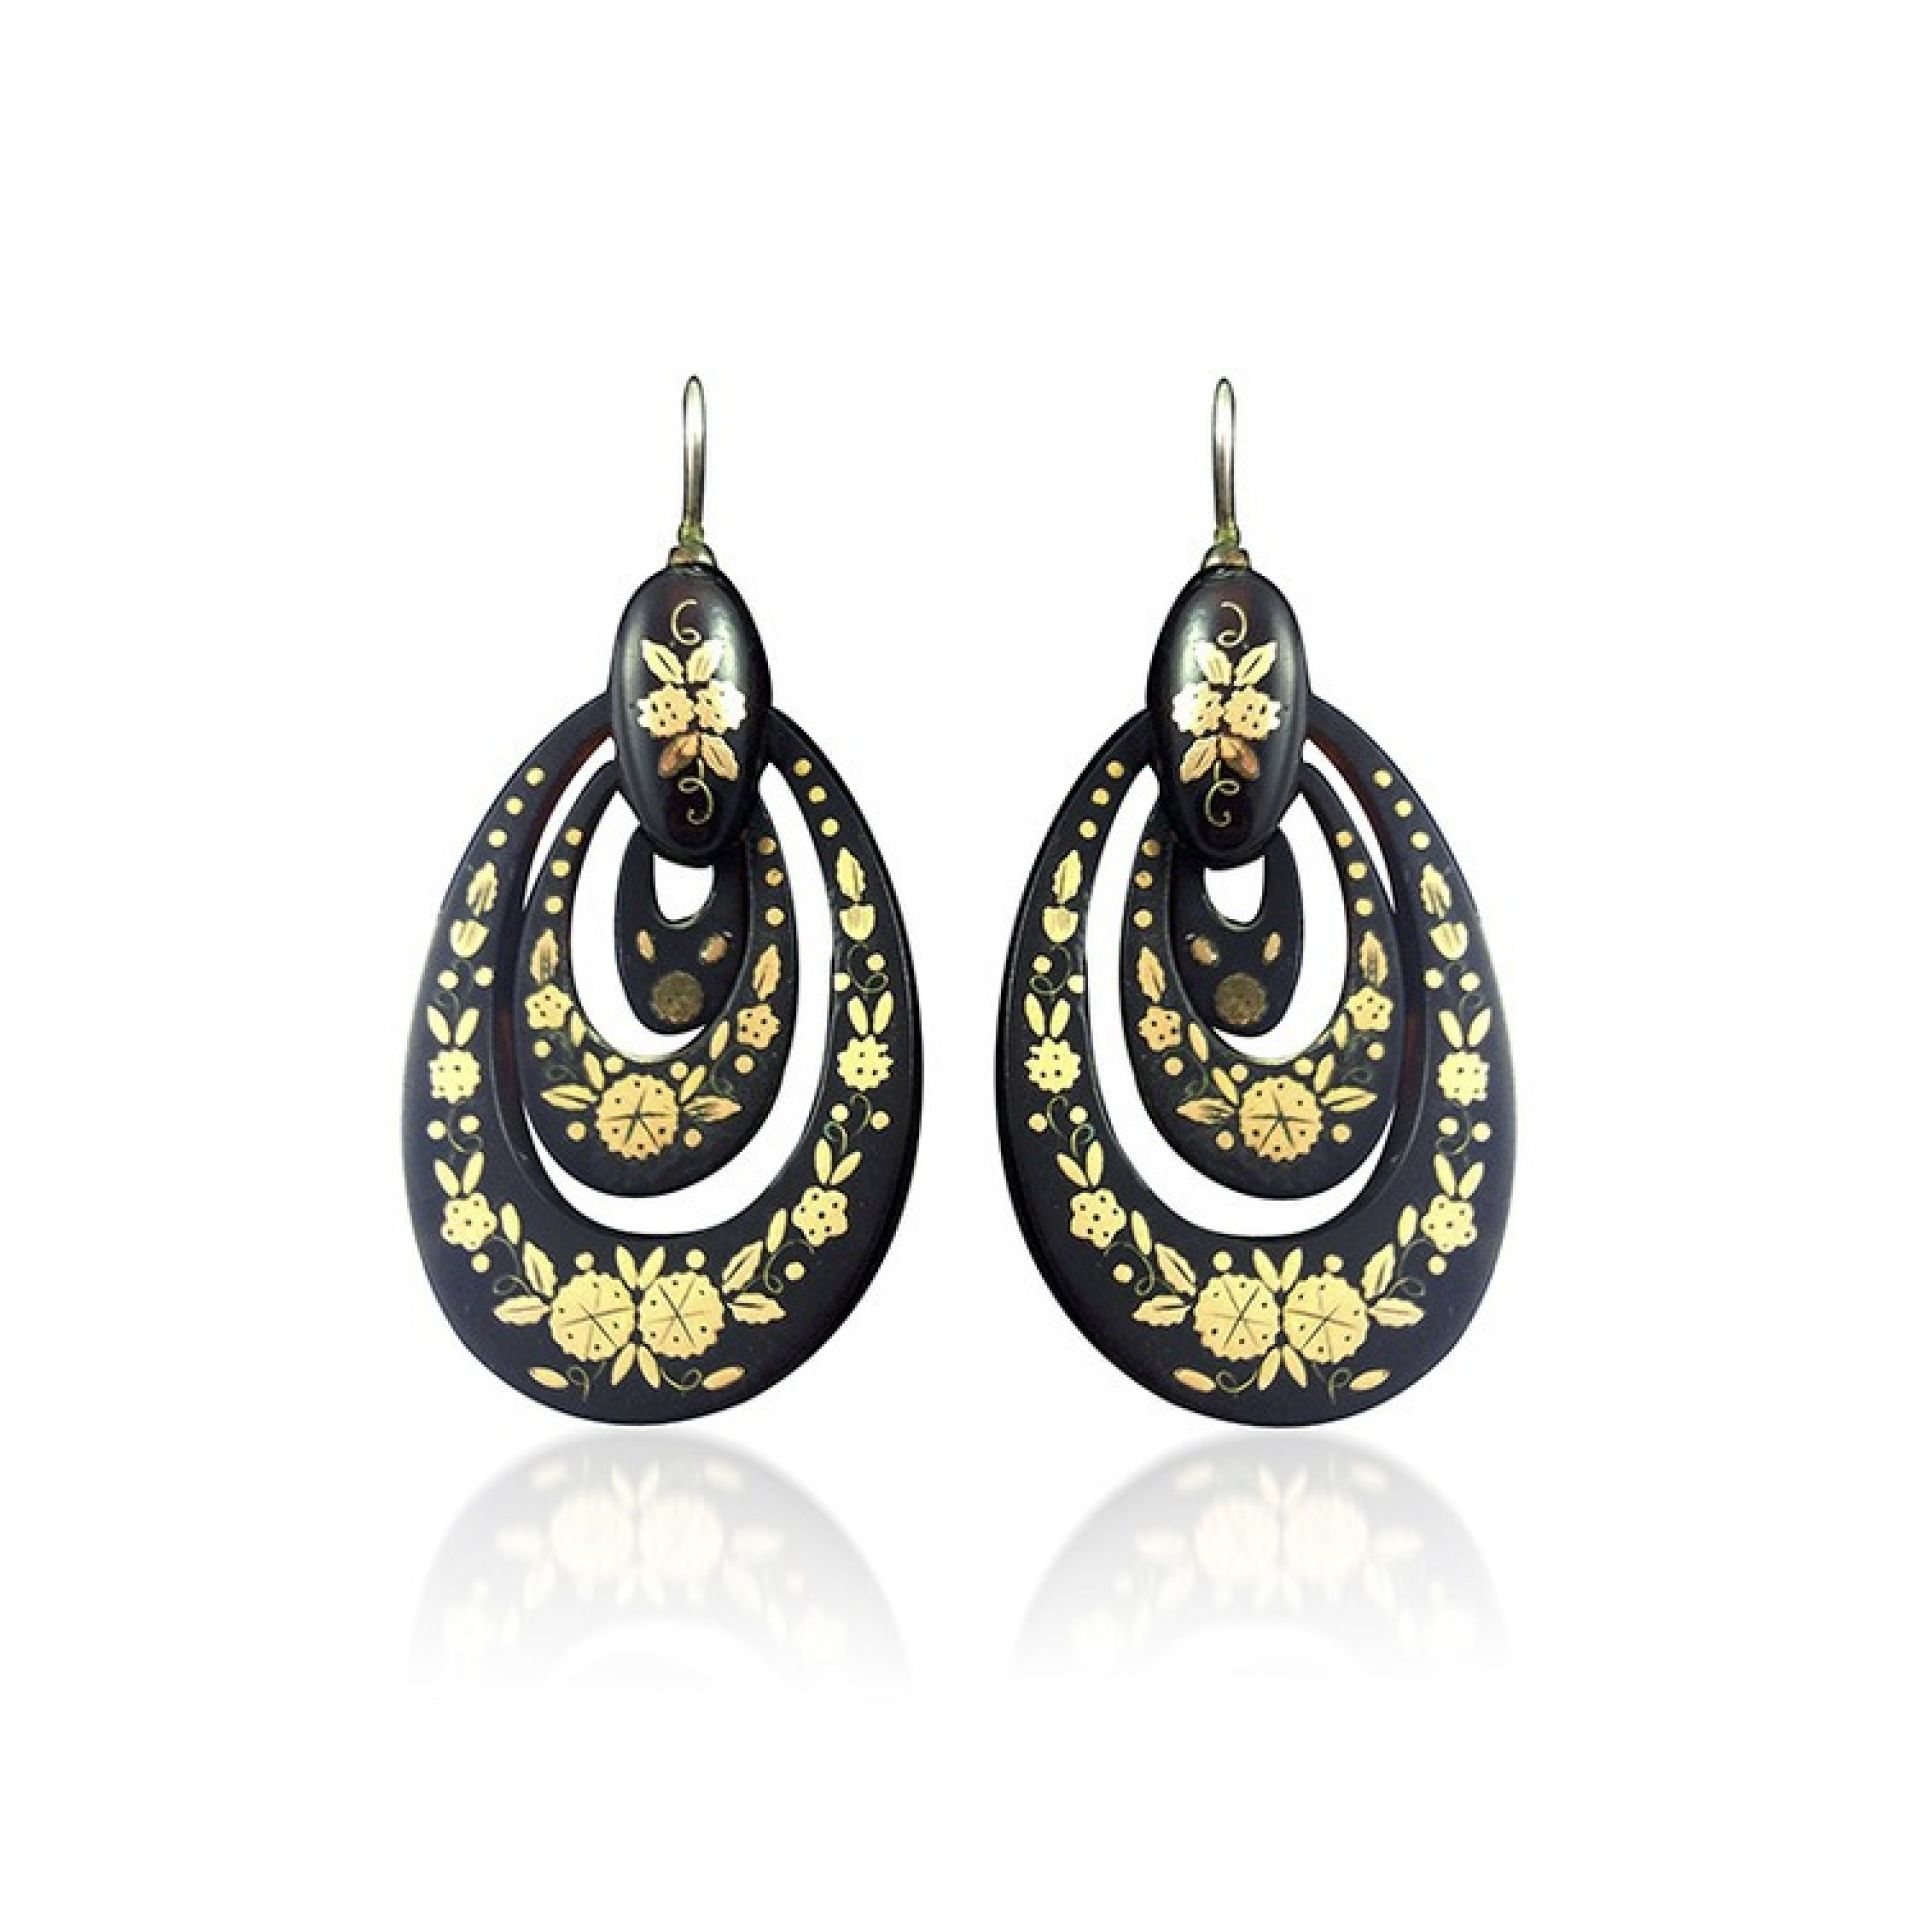 """A PAIR OF VICTORIAN """"PIQUE"""" TORTOISESHELL AND GOLD EARRINGS"""